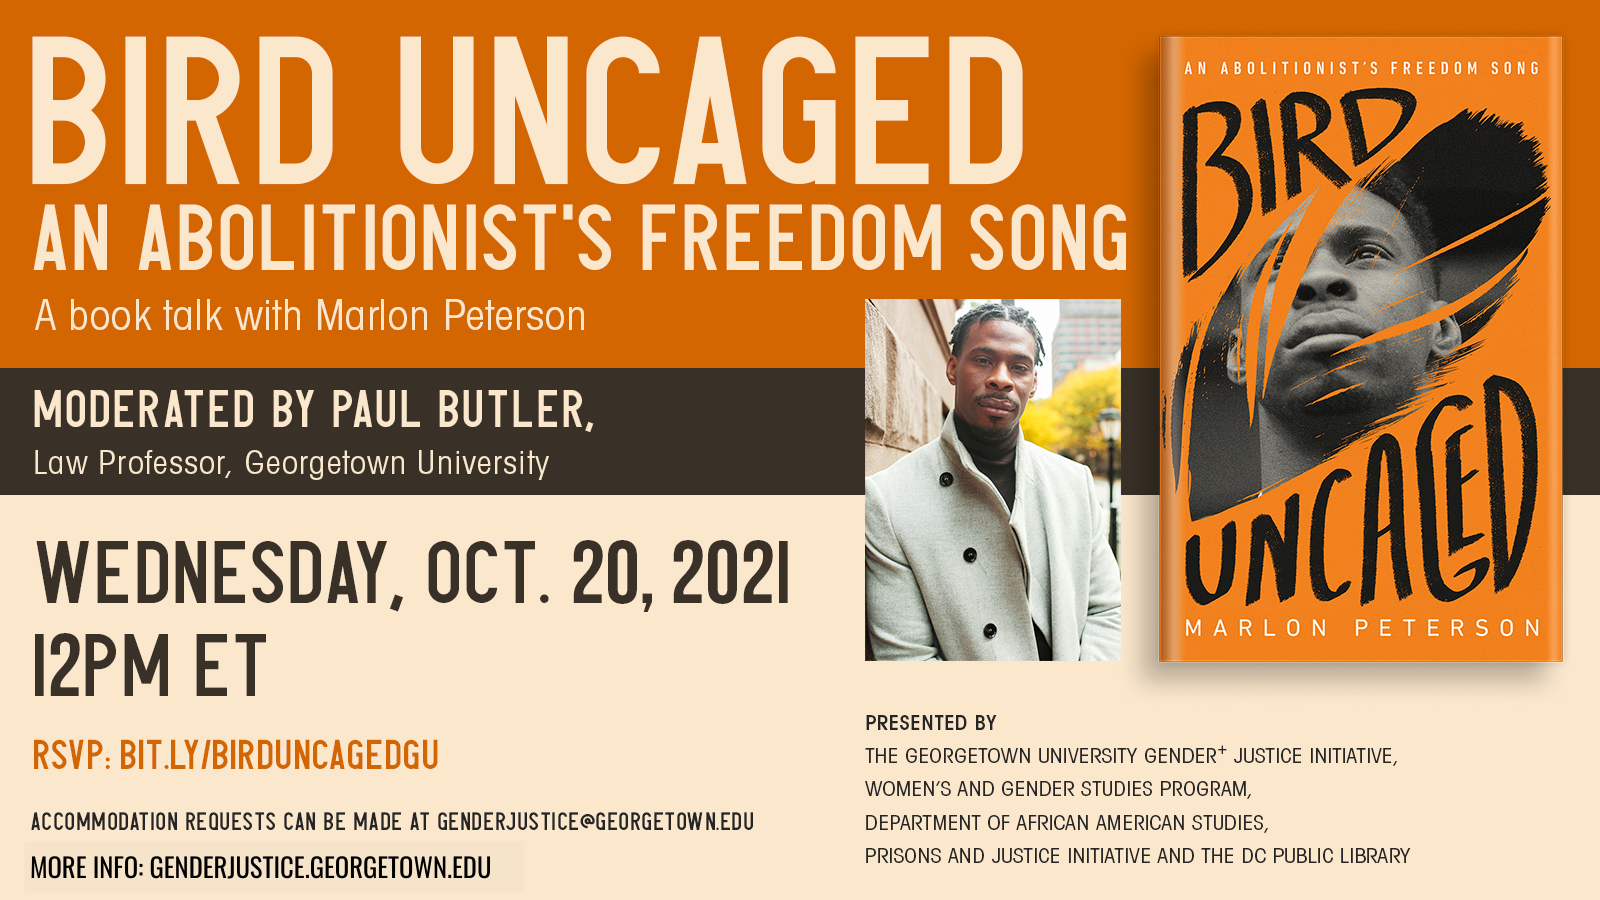 Bird Uncaged Flyer - Orange and beige background, gray text, headshot of author and book cover